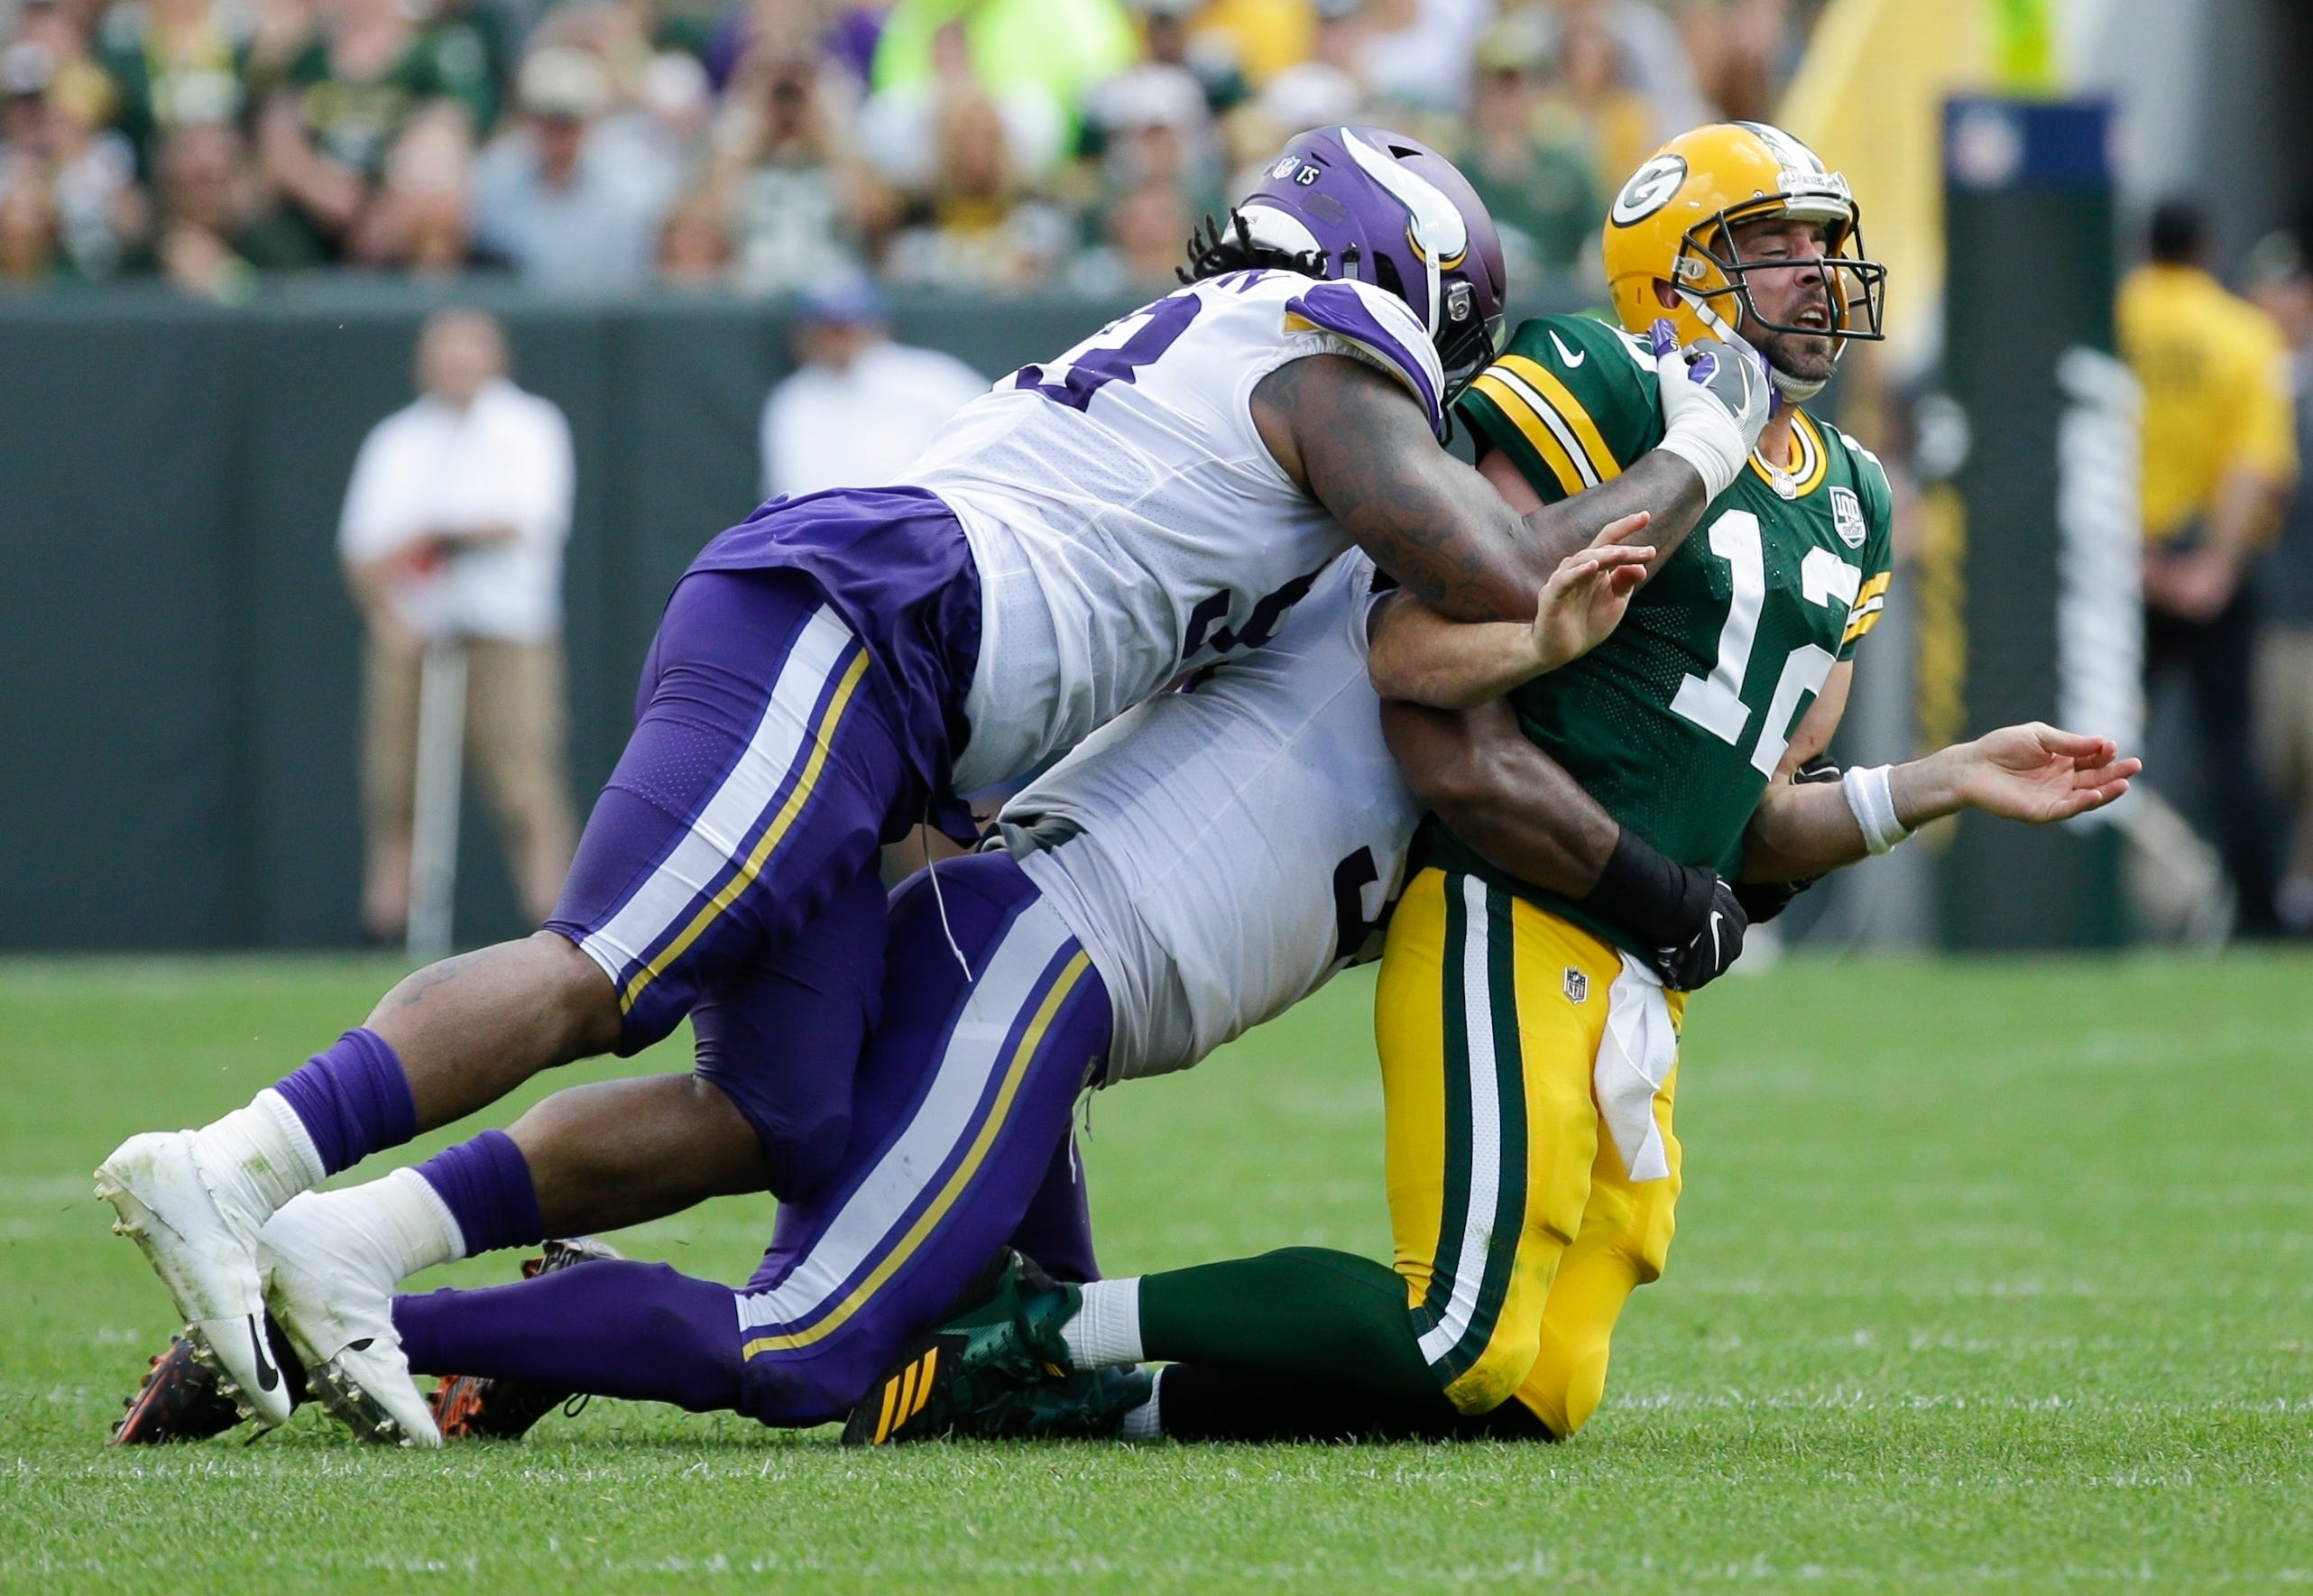 Wearing knee brace, Rodgers returns for Packers